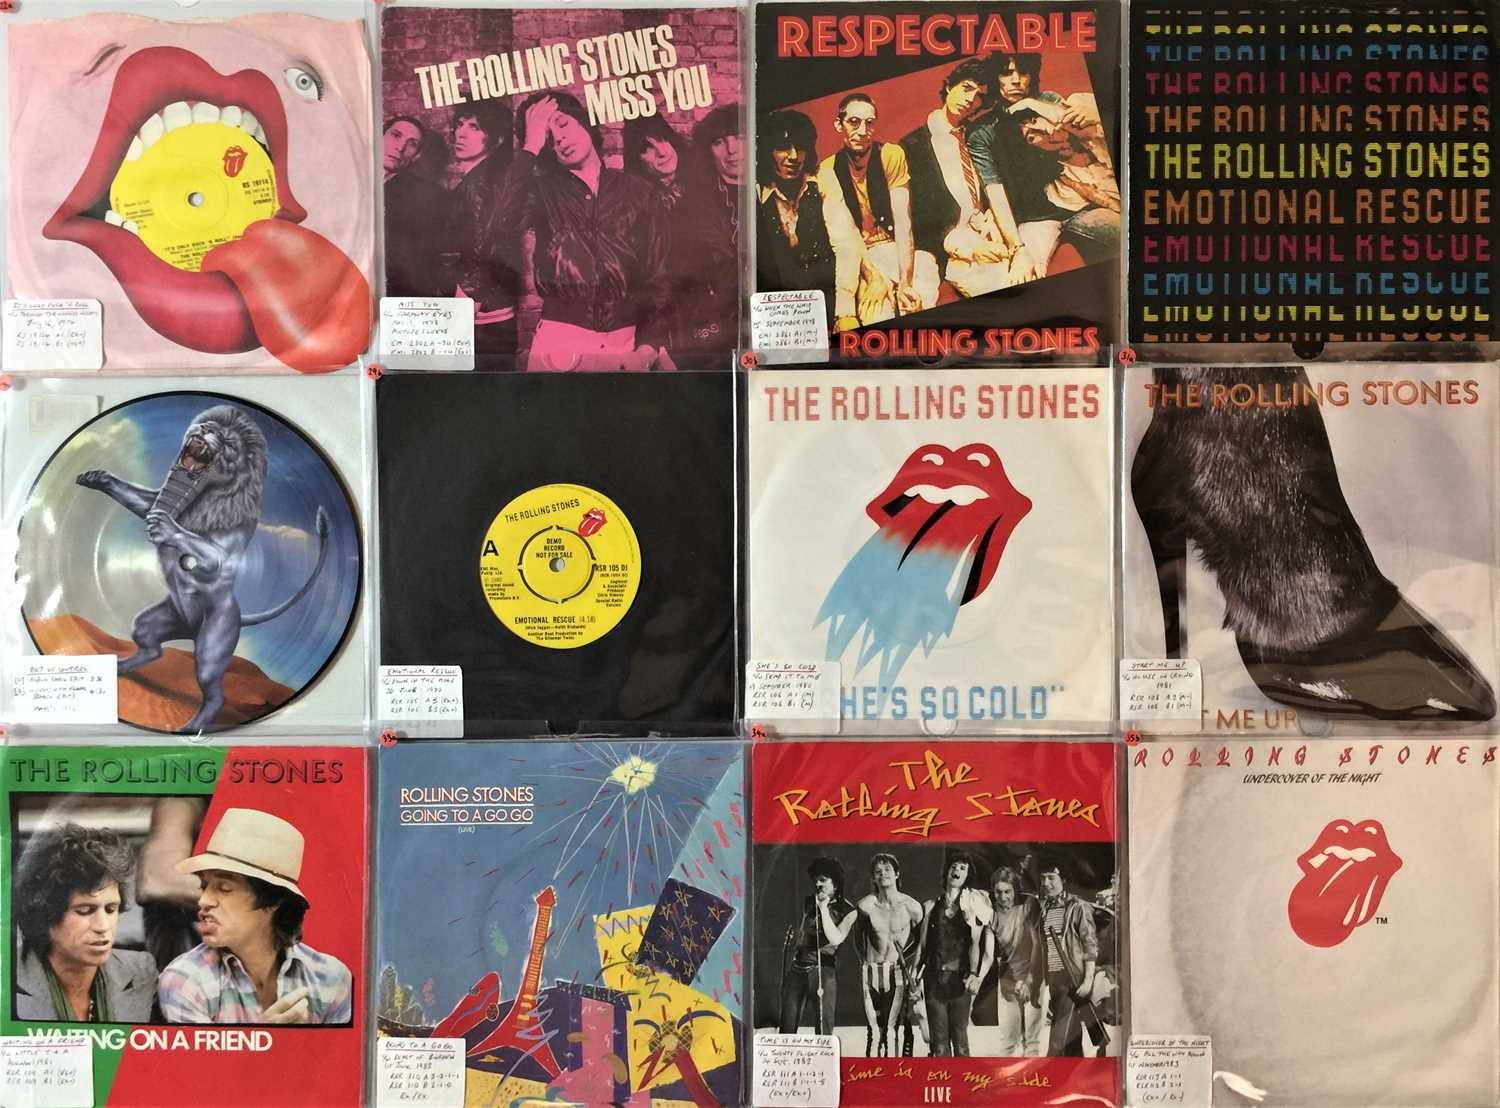 """THE ROLLING STONES - 7"""" COLLECTION (70s/2000s) - Image 3 of 4"""